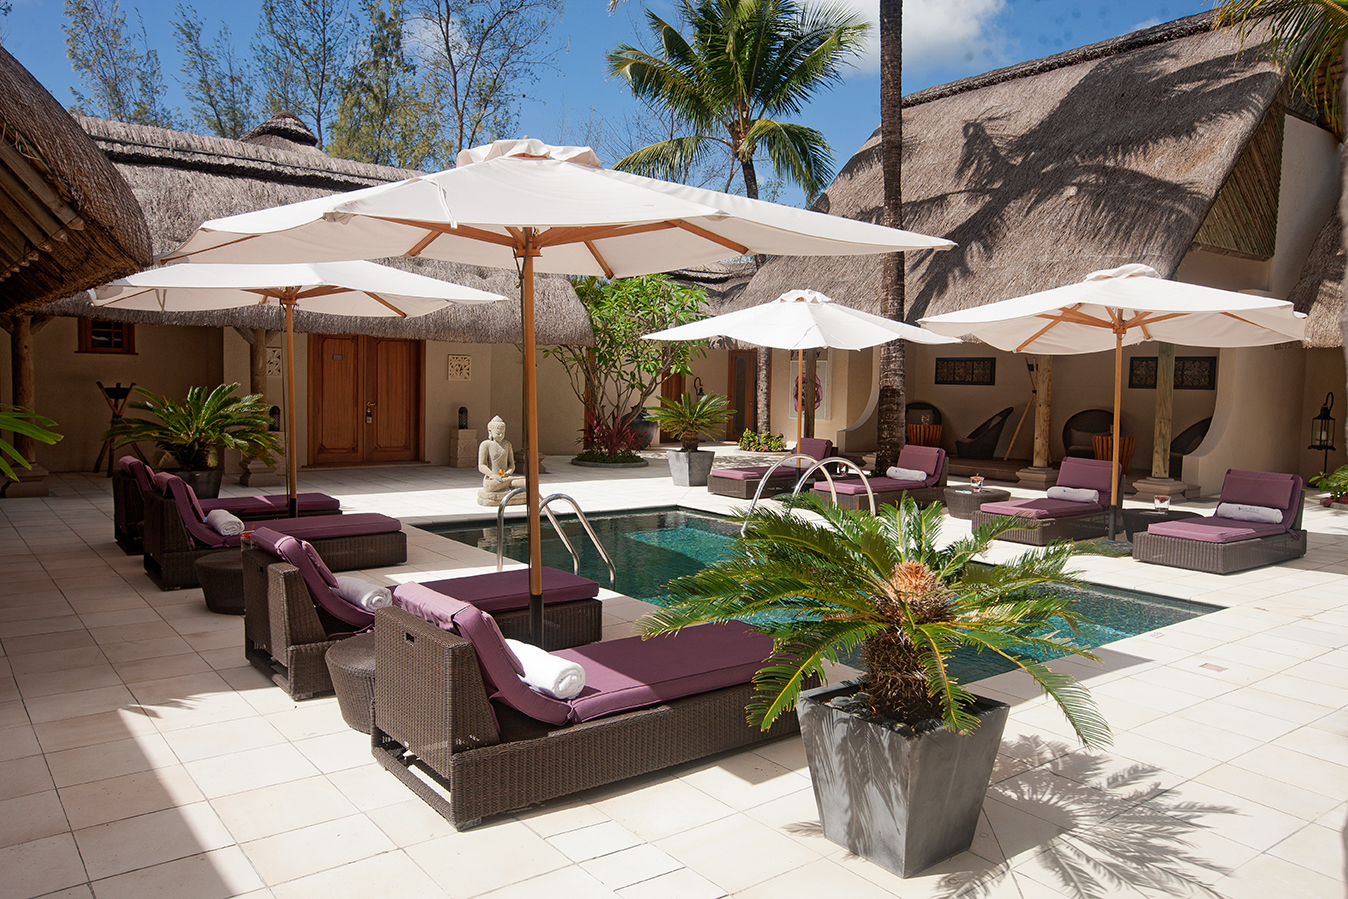 U Spa Constance Le Prince Maurice Mauritius - 5 of the best spas